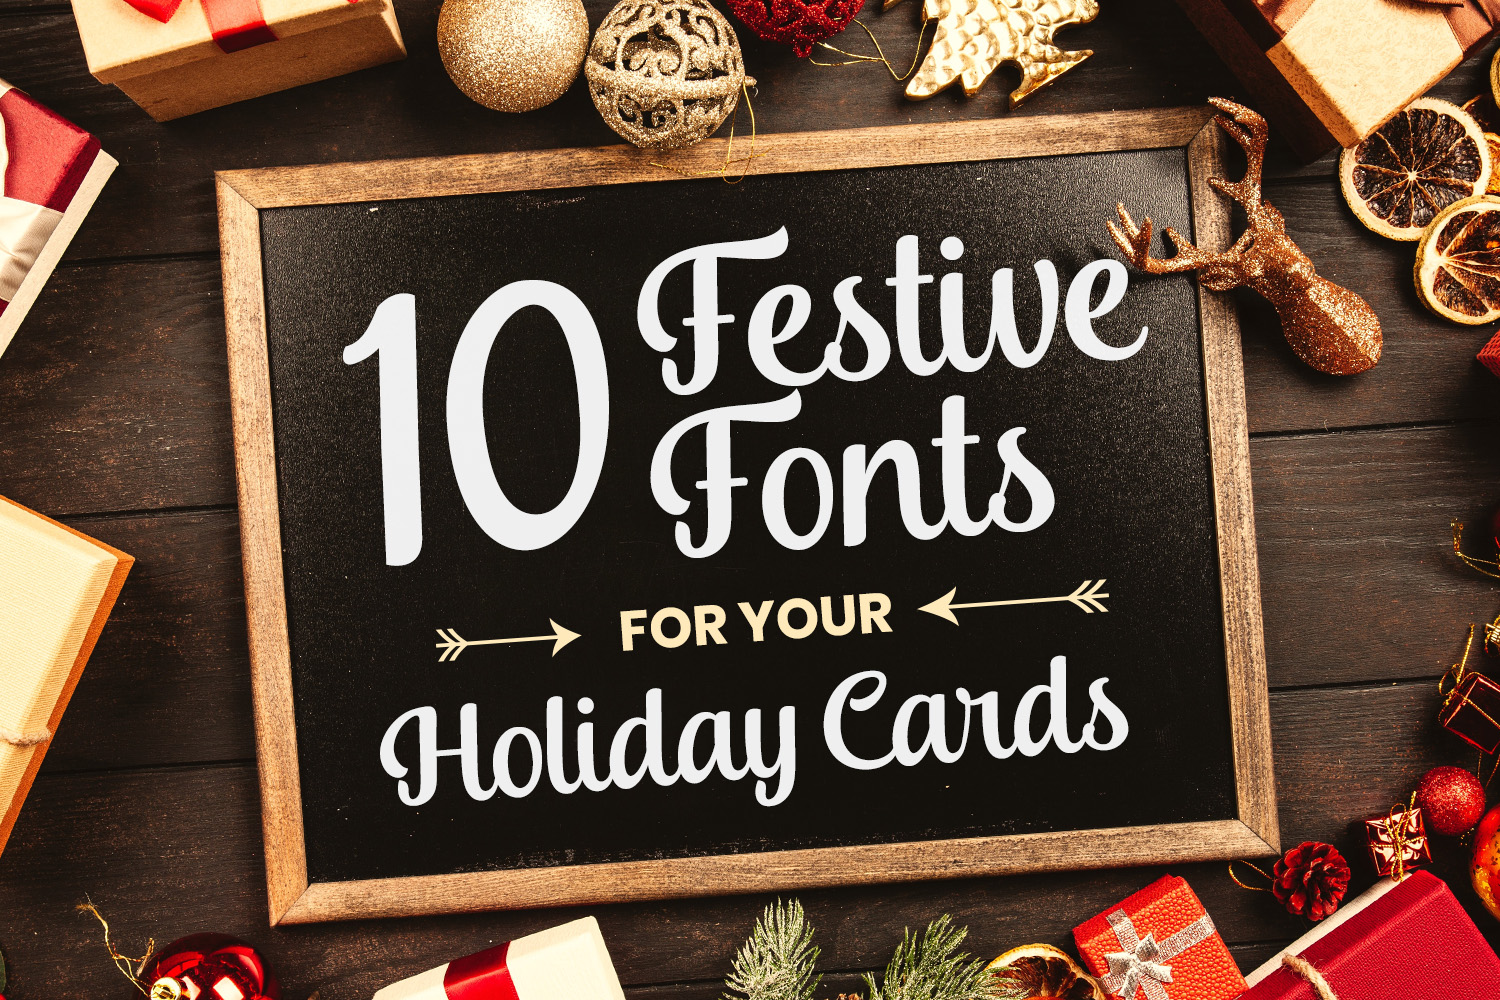 10 Festive Fonts for your Holiday Cards